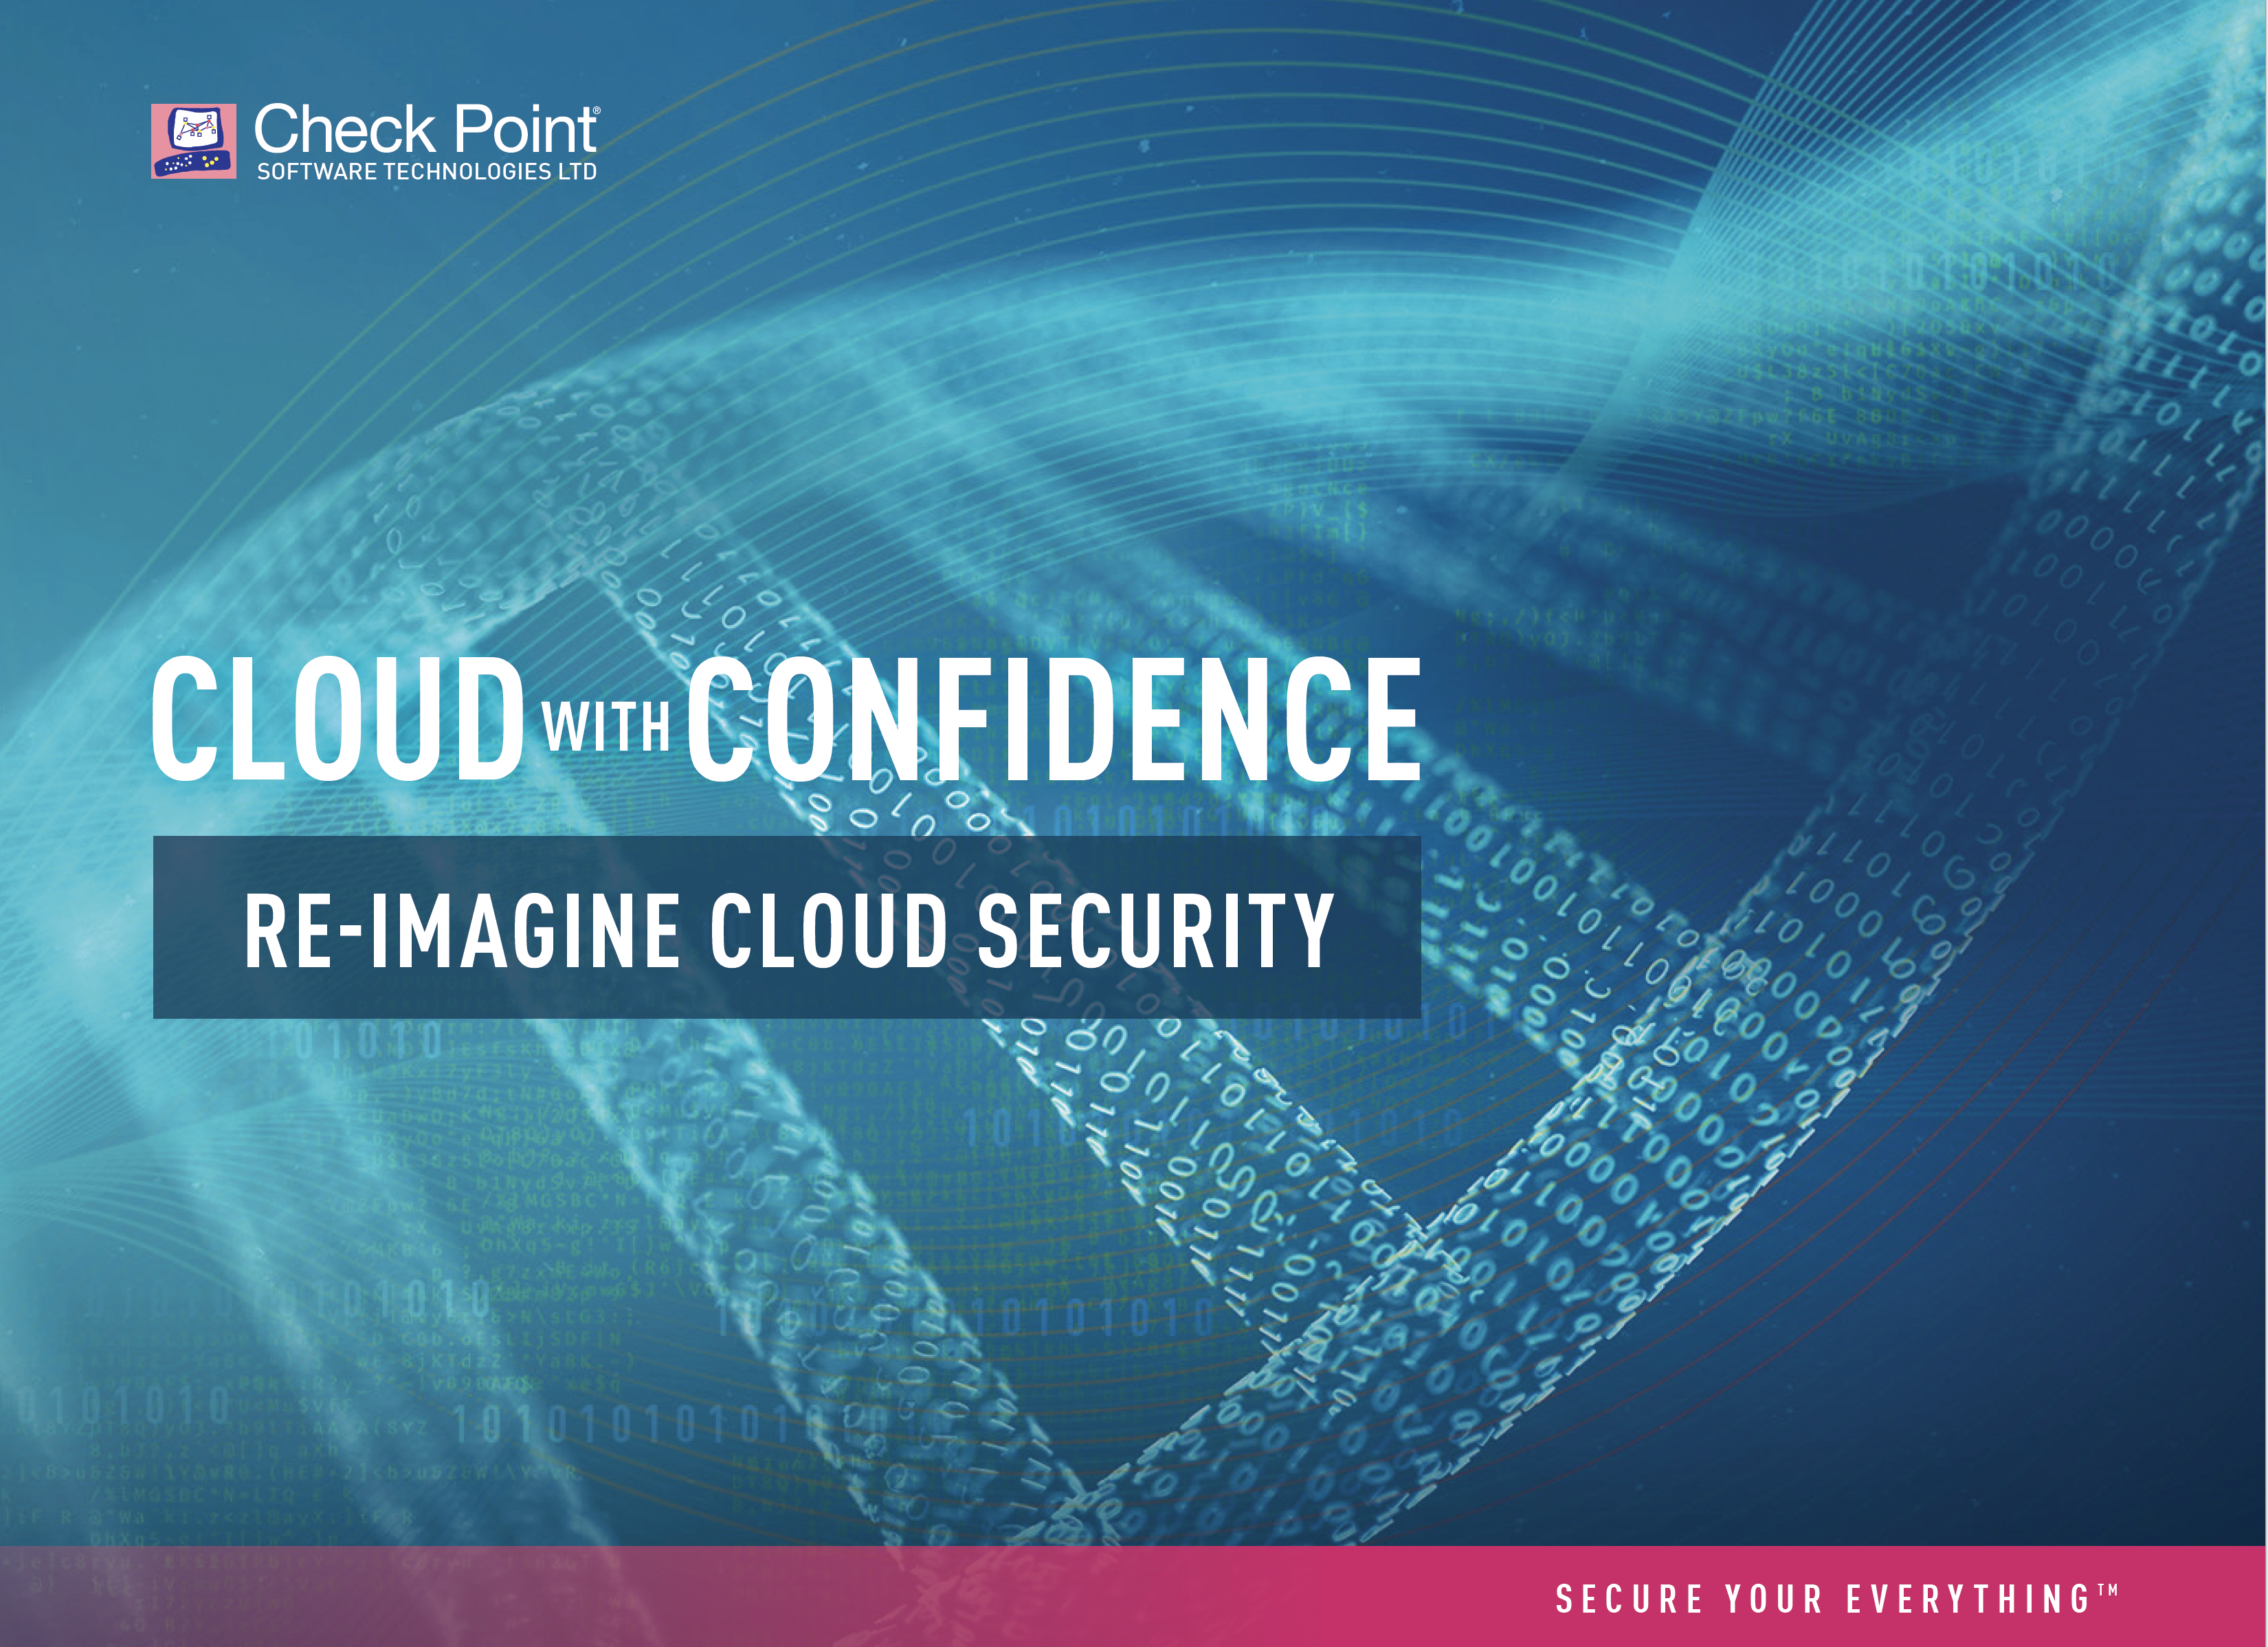 Check Point Cloud with Confidence eBook Image